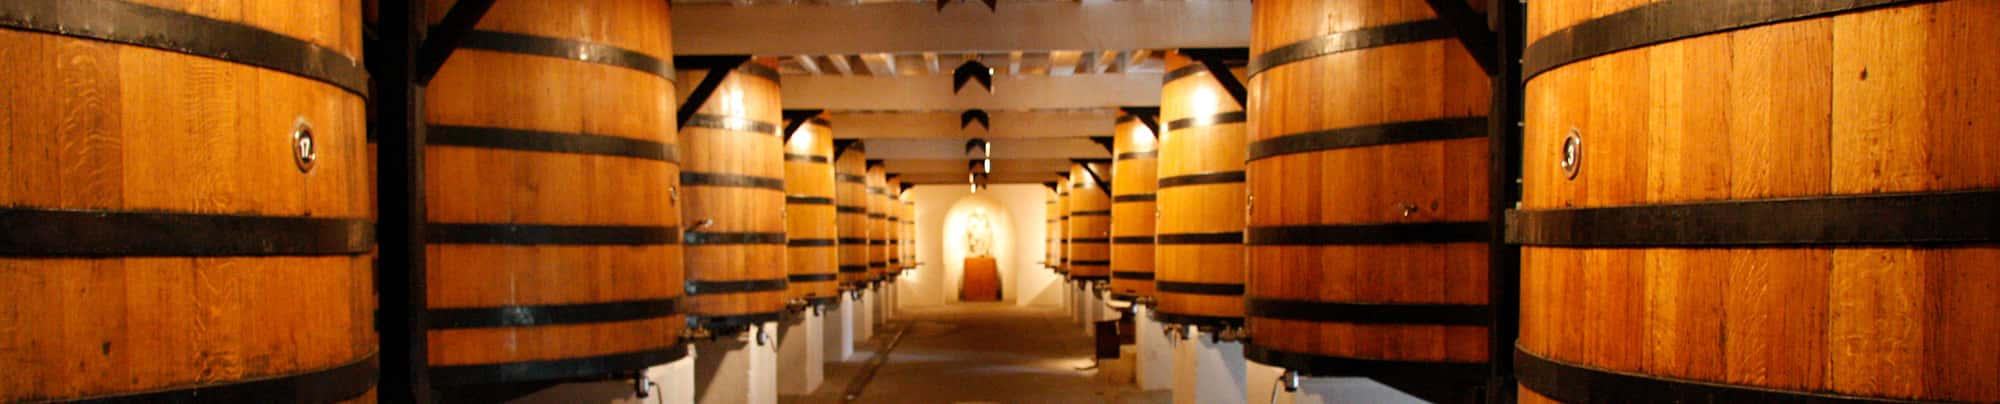 Winemaking: From Vineyard to Bottle